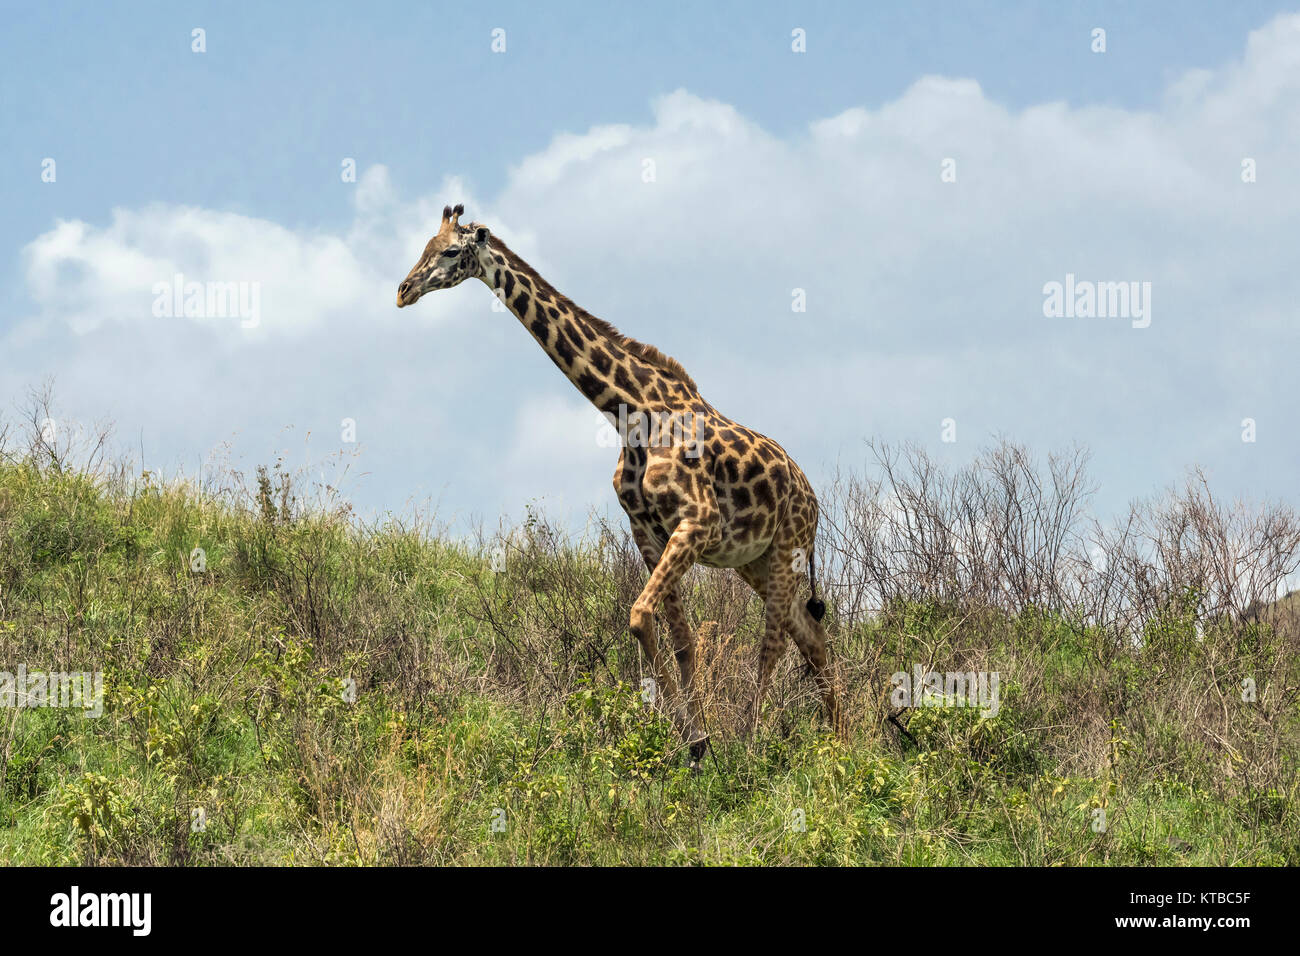 Masai giraffe (Giraffa tippelskirchi) near the top of a hill, Arusha NP, Tanzania - Stock Image